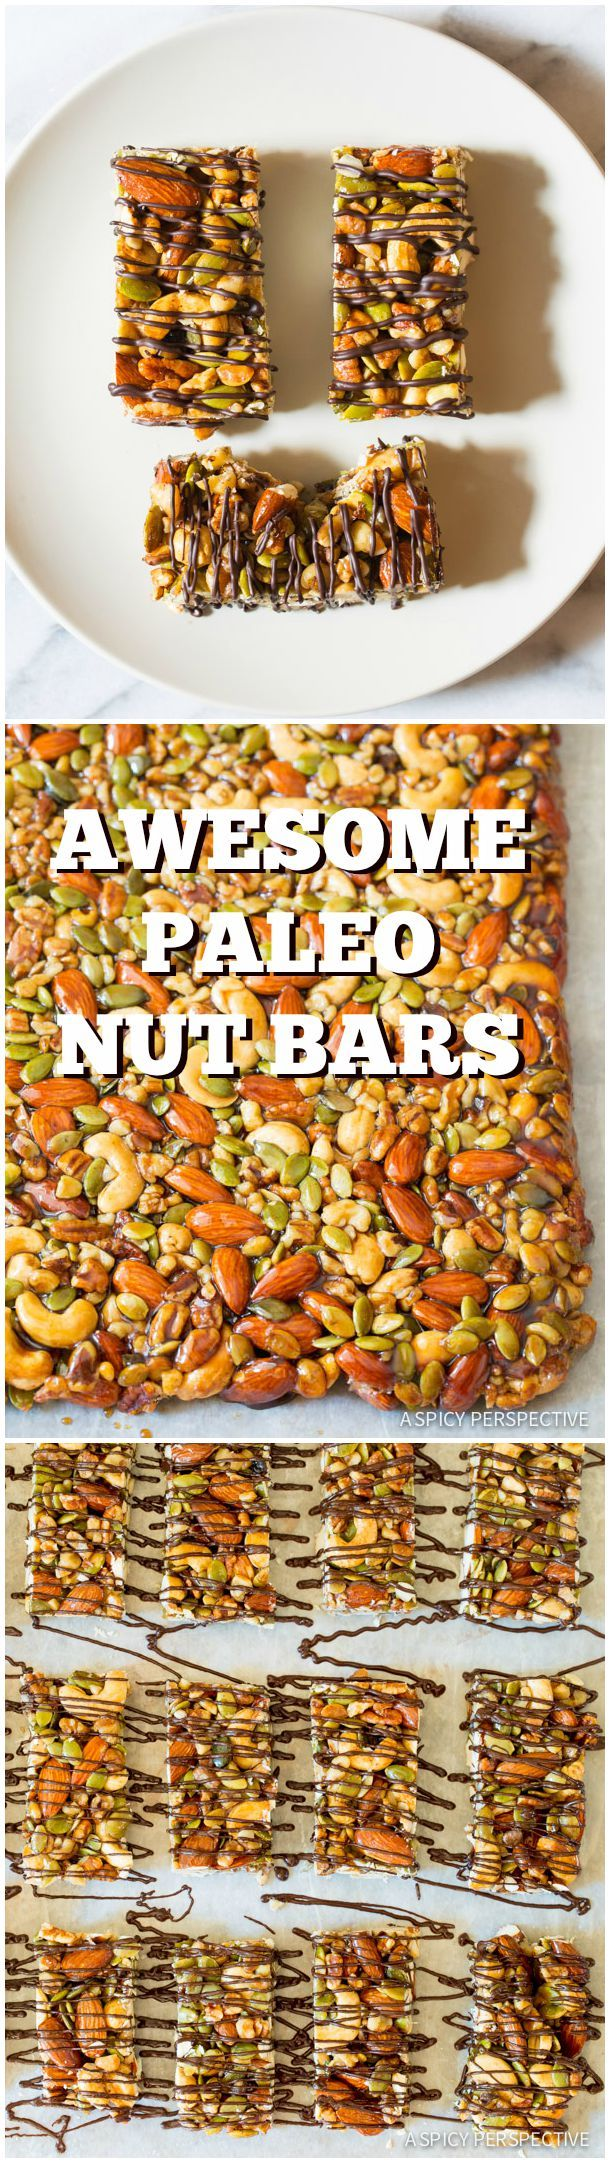 Crazy Over These Kid-Friendly Paleo Nut Bar Recipe with Chocolate Drizzle on ASpicyPerspective.com #paleo #vegan #glutenfree